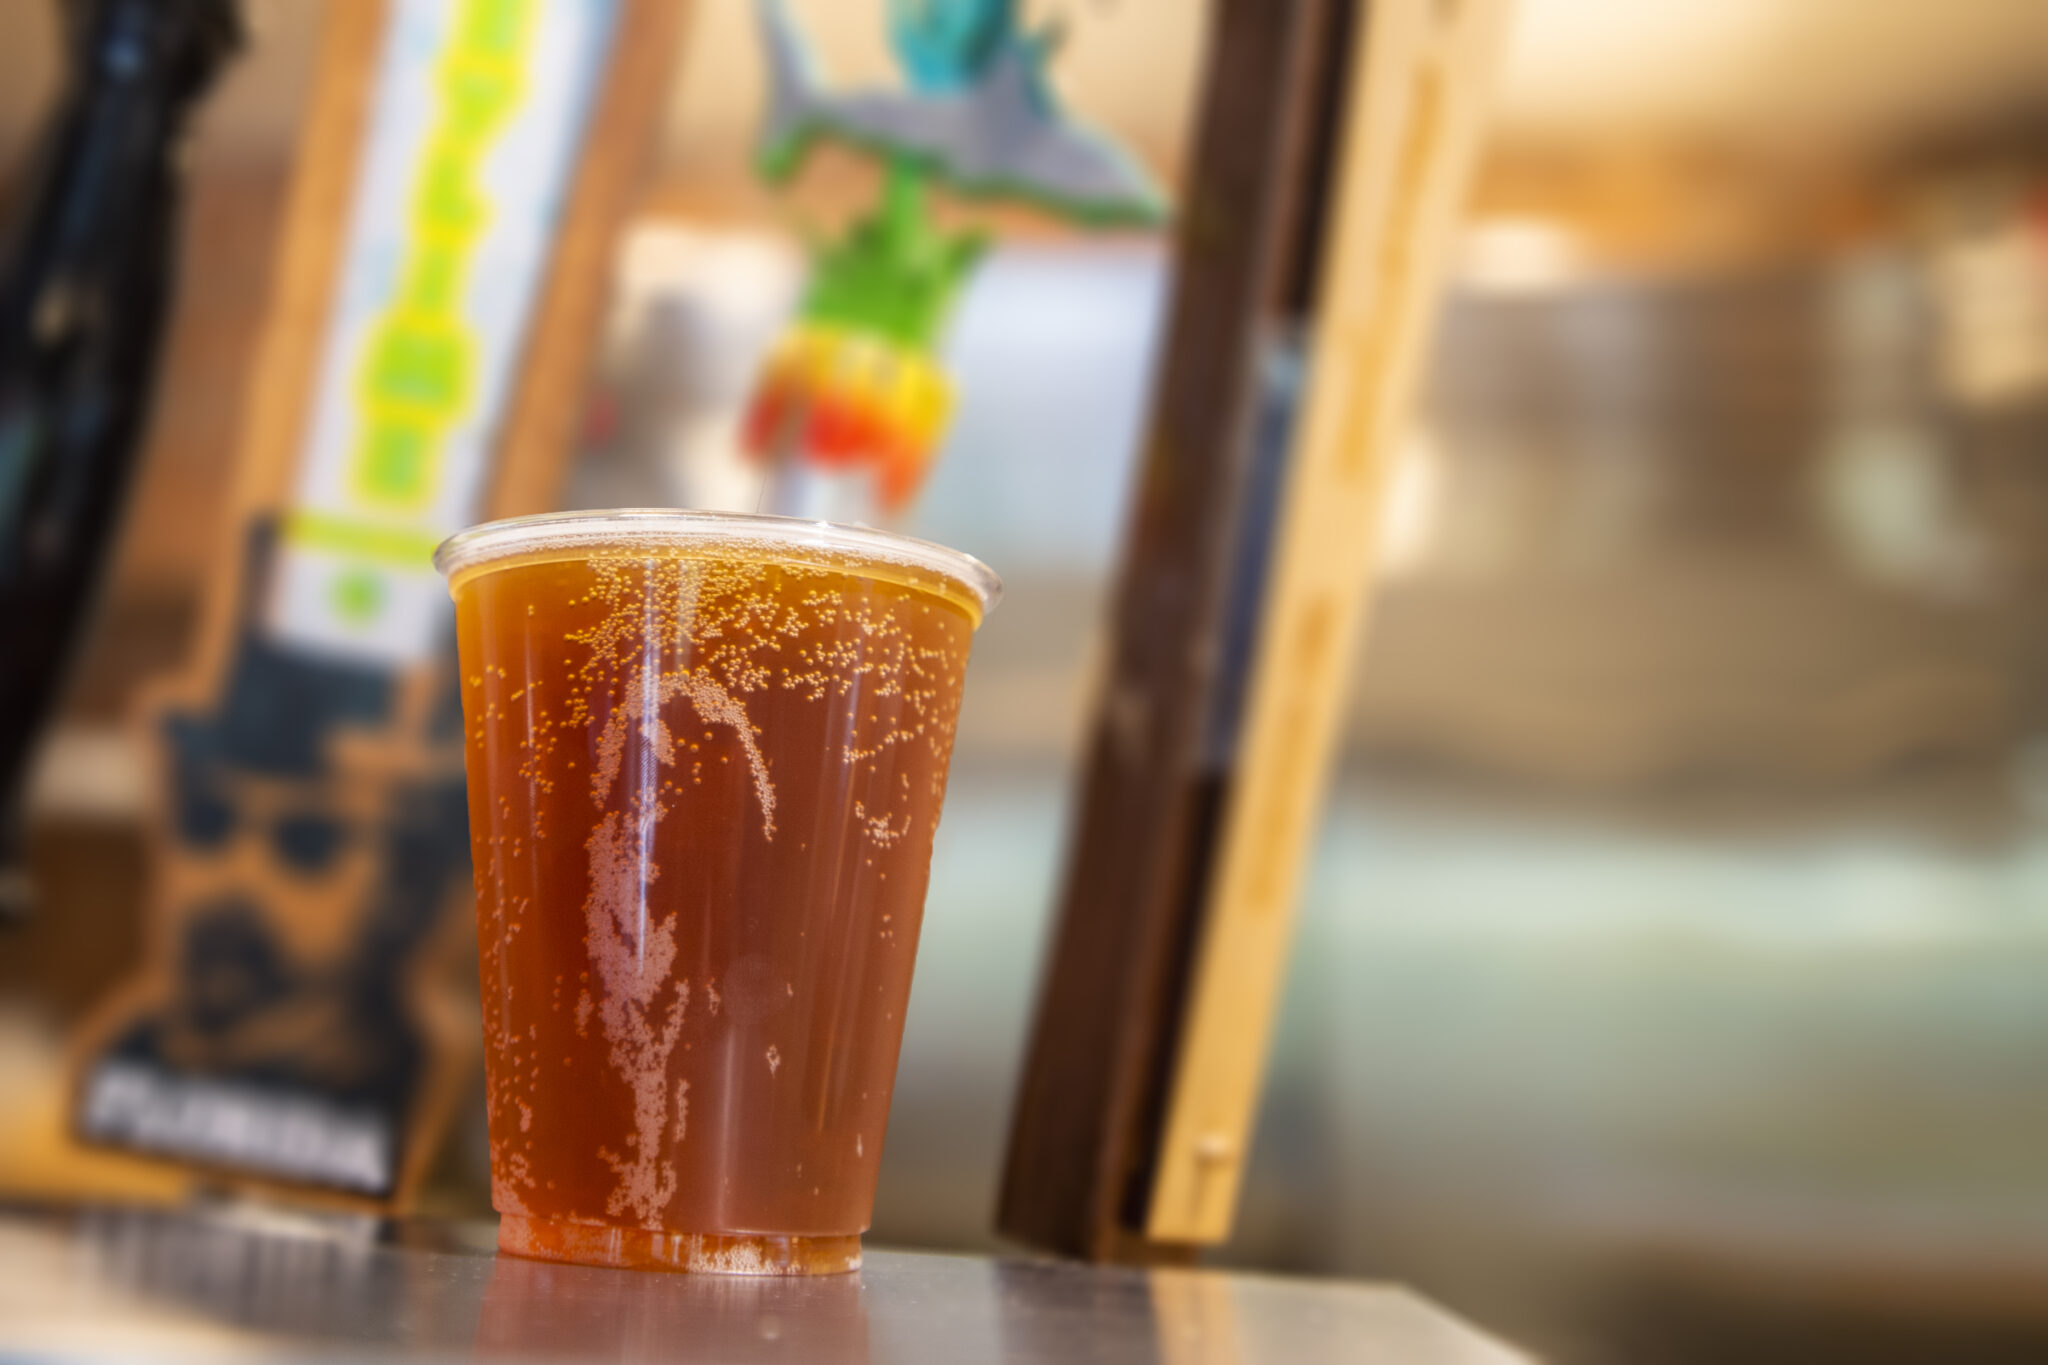 Guests will be able to receive complimentary beer at SeaWorld during the summer.